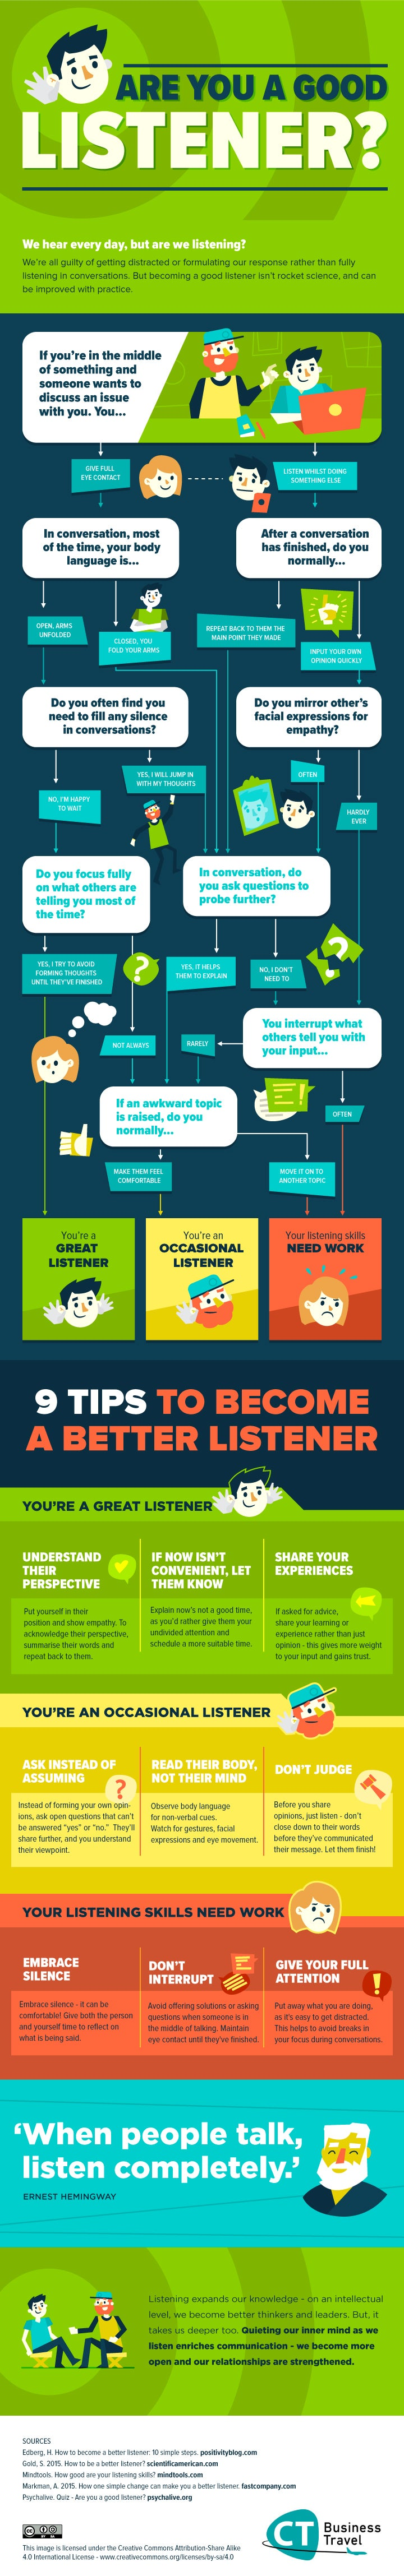 https://assets.entrepreneur.com/images/misc/1472756206_good-listener-infographic.jpg